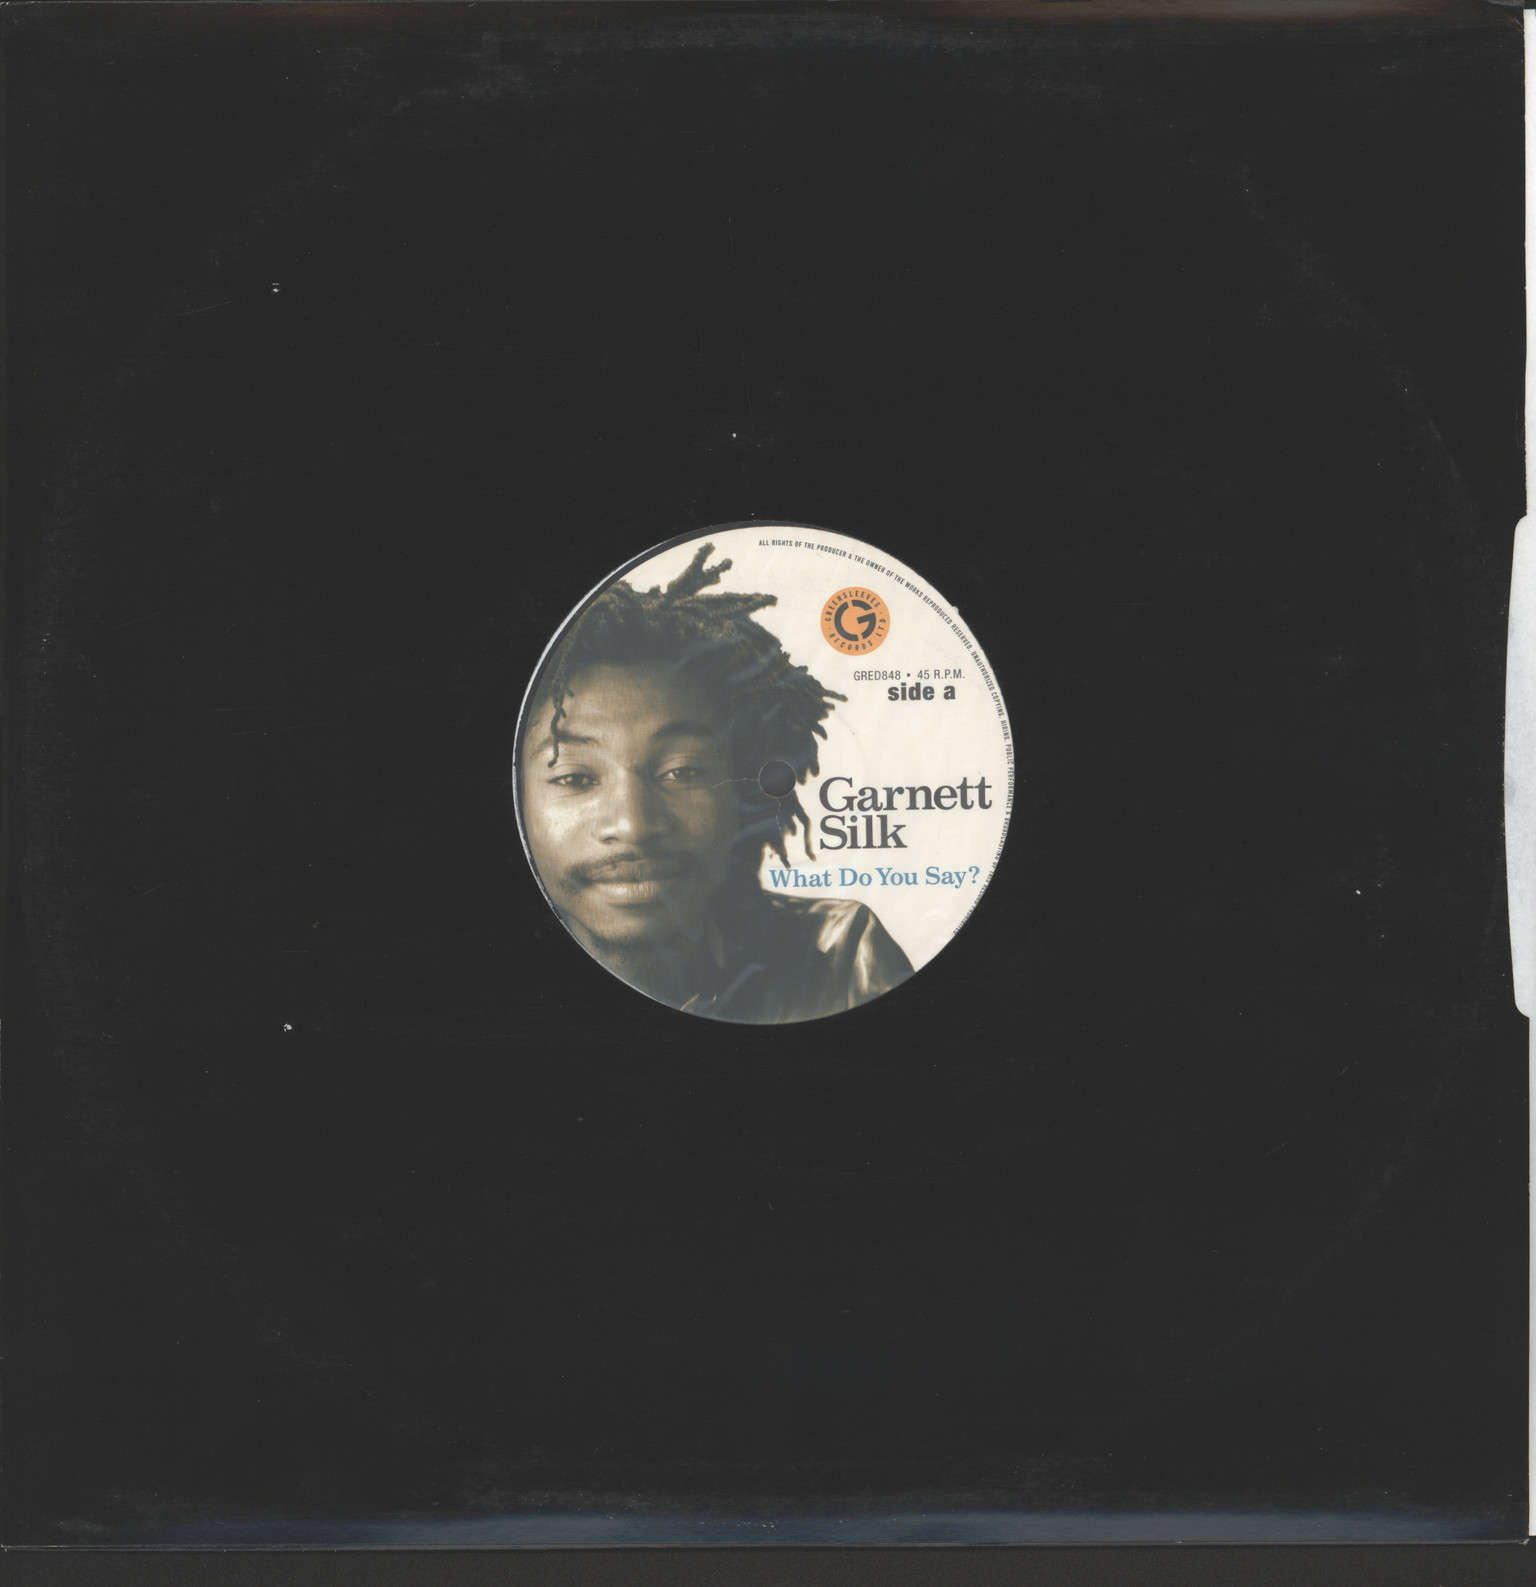 "Garnett Silk: What Do You Say?, 12"" Maxi Single (Vinyl)"